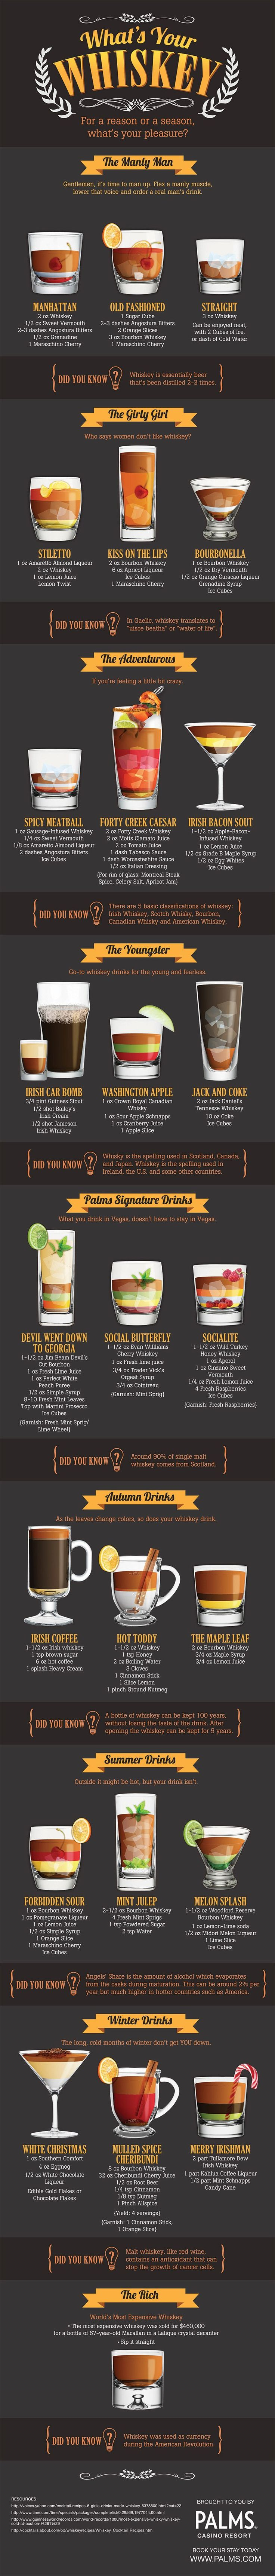 How Do You Take Your Whiskey? [infographic]